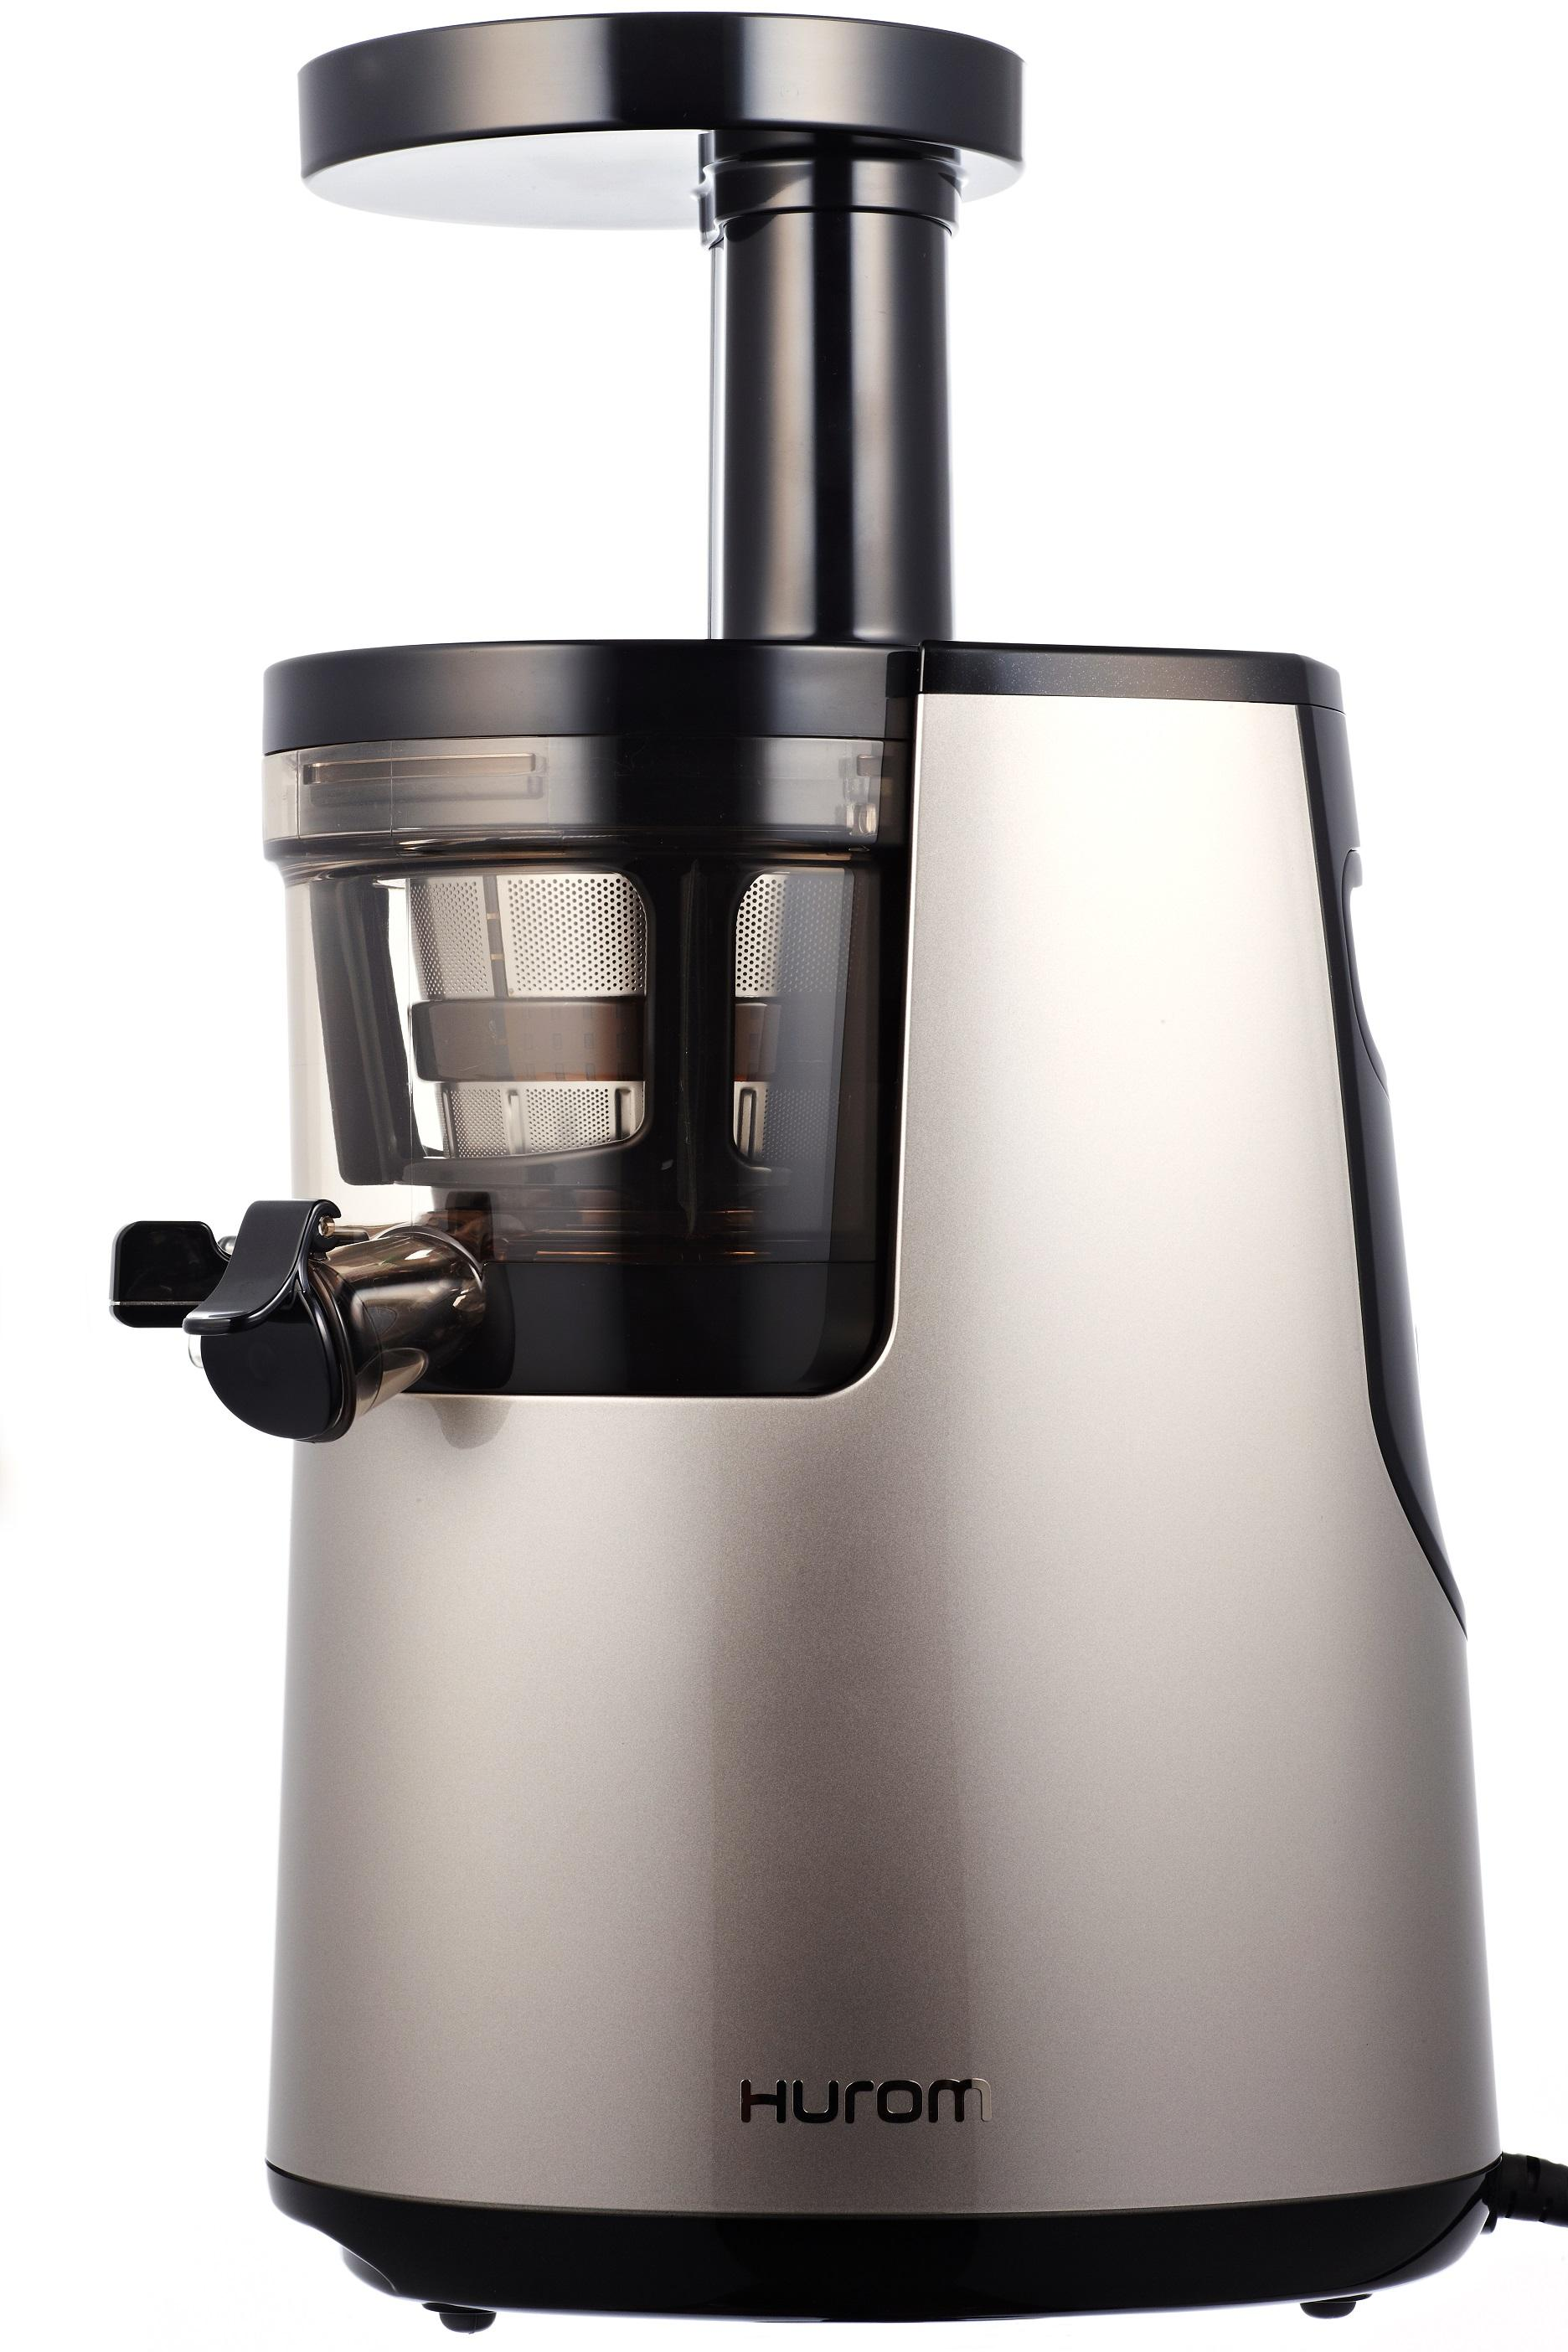 Hurom Hh Elite Slow Juicer : Hurom HH Elite Slow Juicer Williams Sonoma AU